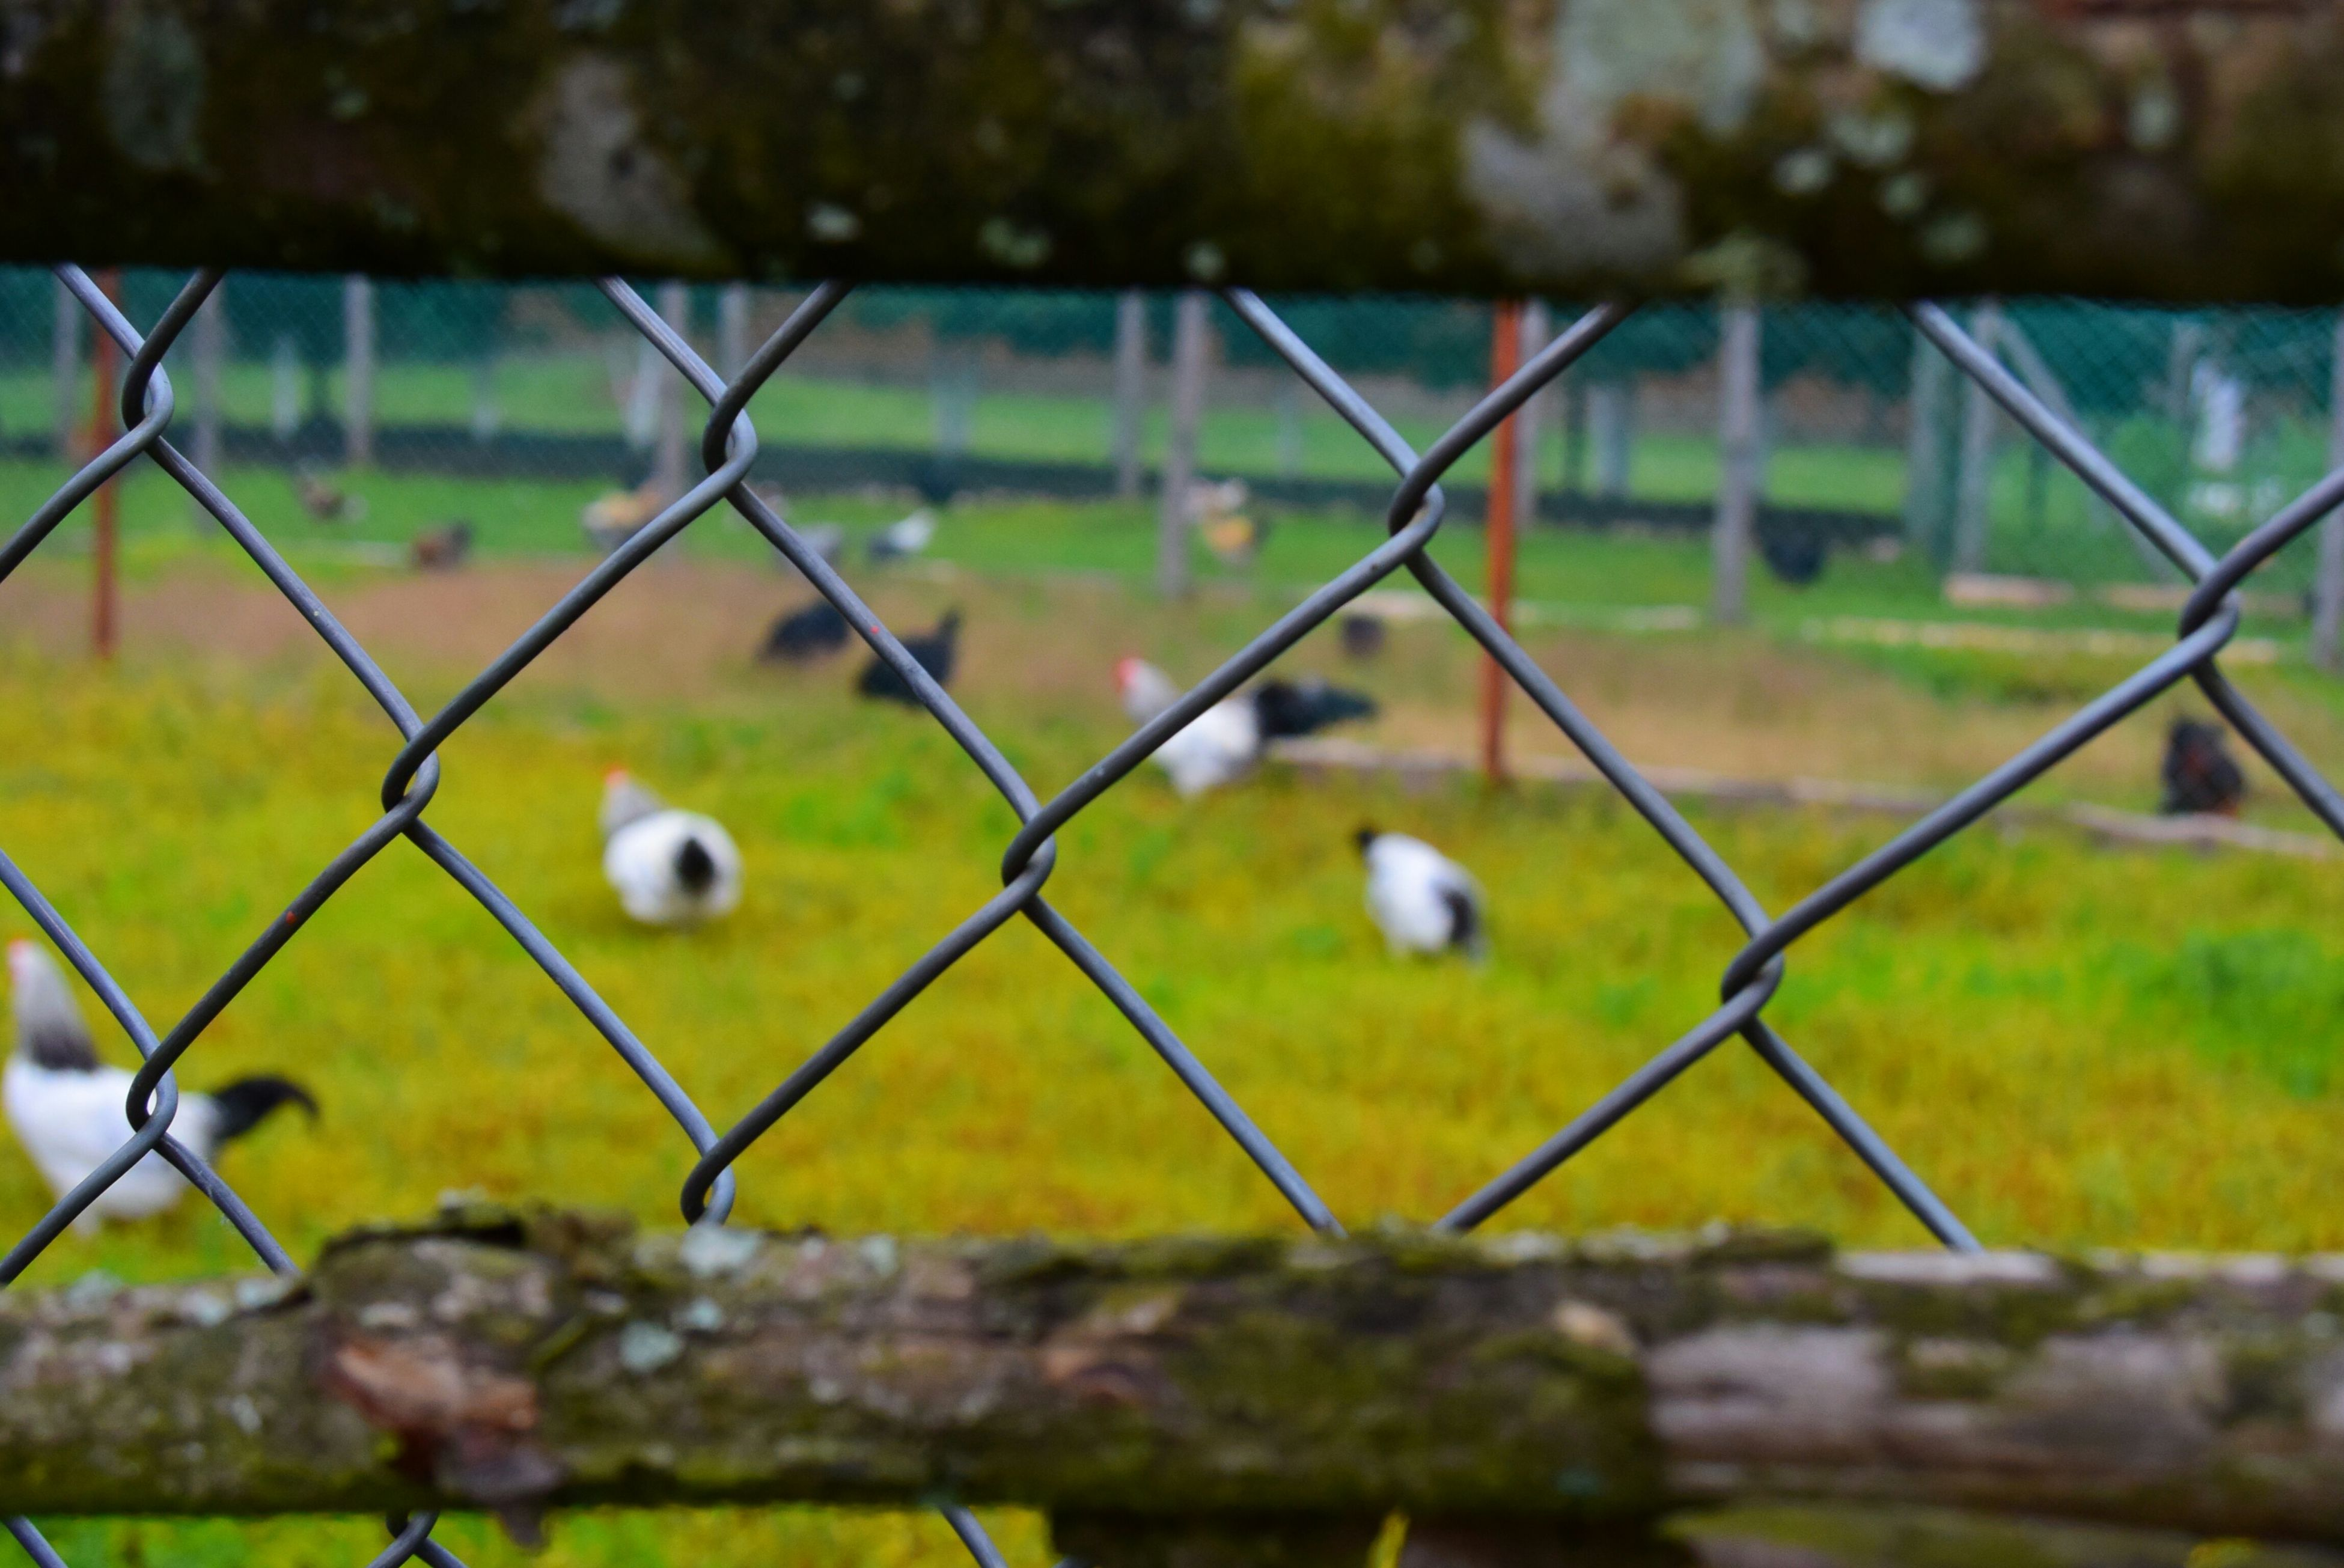 fence, chainlink fence, protection, safety, focus on foreground, security, metal, field, close-up, grass, day, barbed wire, selective focus, outdoors, no people, sky, nature, landscape, railing, tree